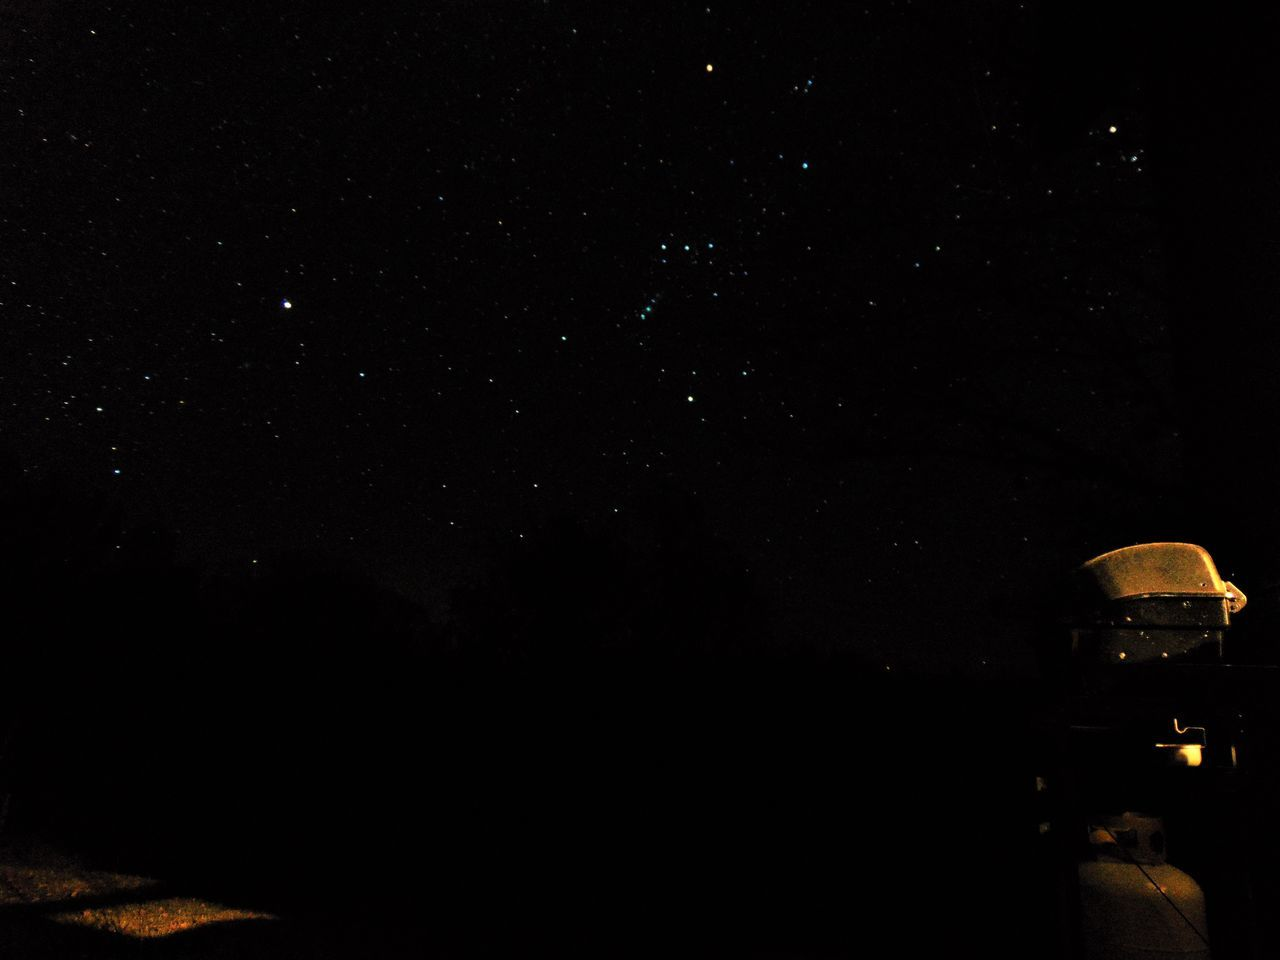 Astronomy Beauty In Nature Constellation Nature Night No People Outdoors Sky Space Star - Space Star Field